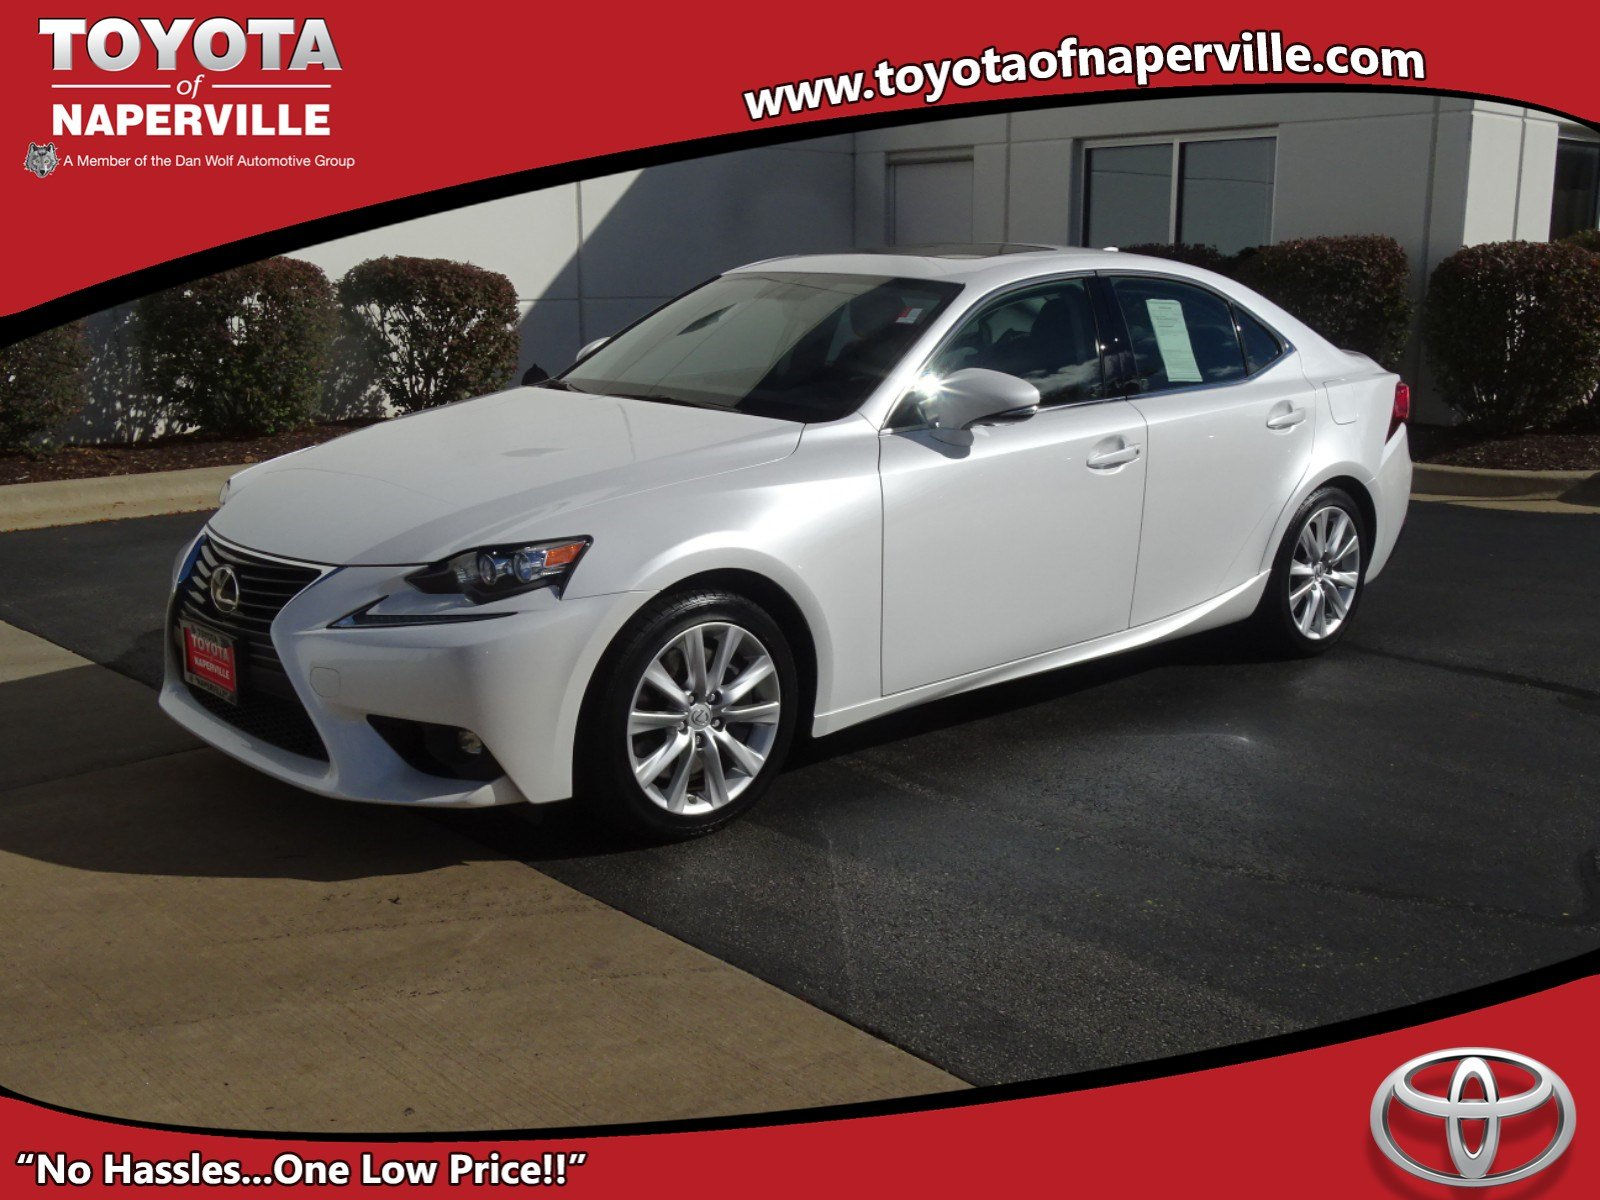 Pre Owned 2016 Lexus IS 200t 4D Sedan in Naperville